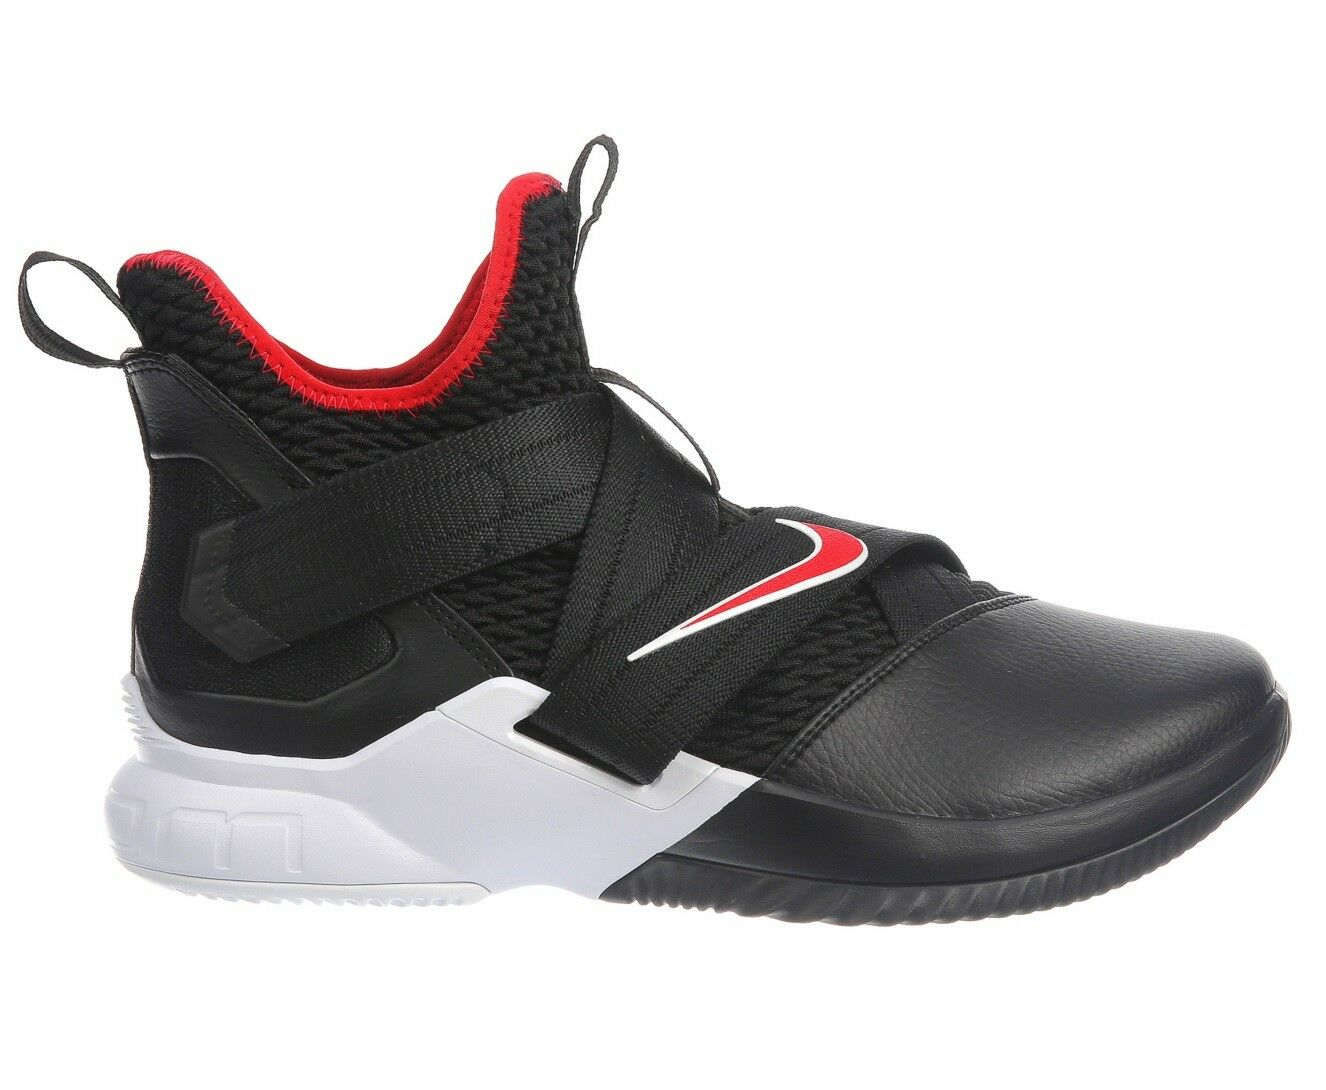 Nike Lebron Soldier 12 Bred Mens AO2609-001 Black Red Basketball Shoes Size 7.5